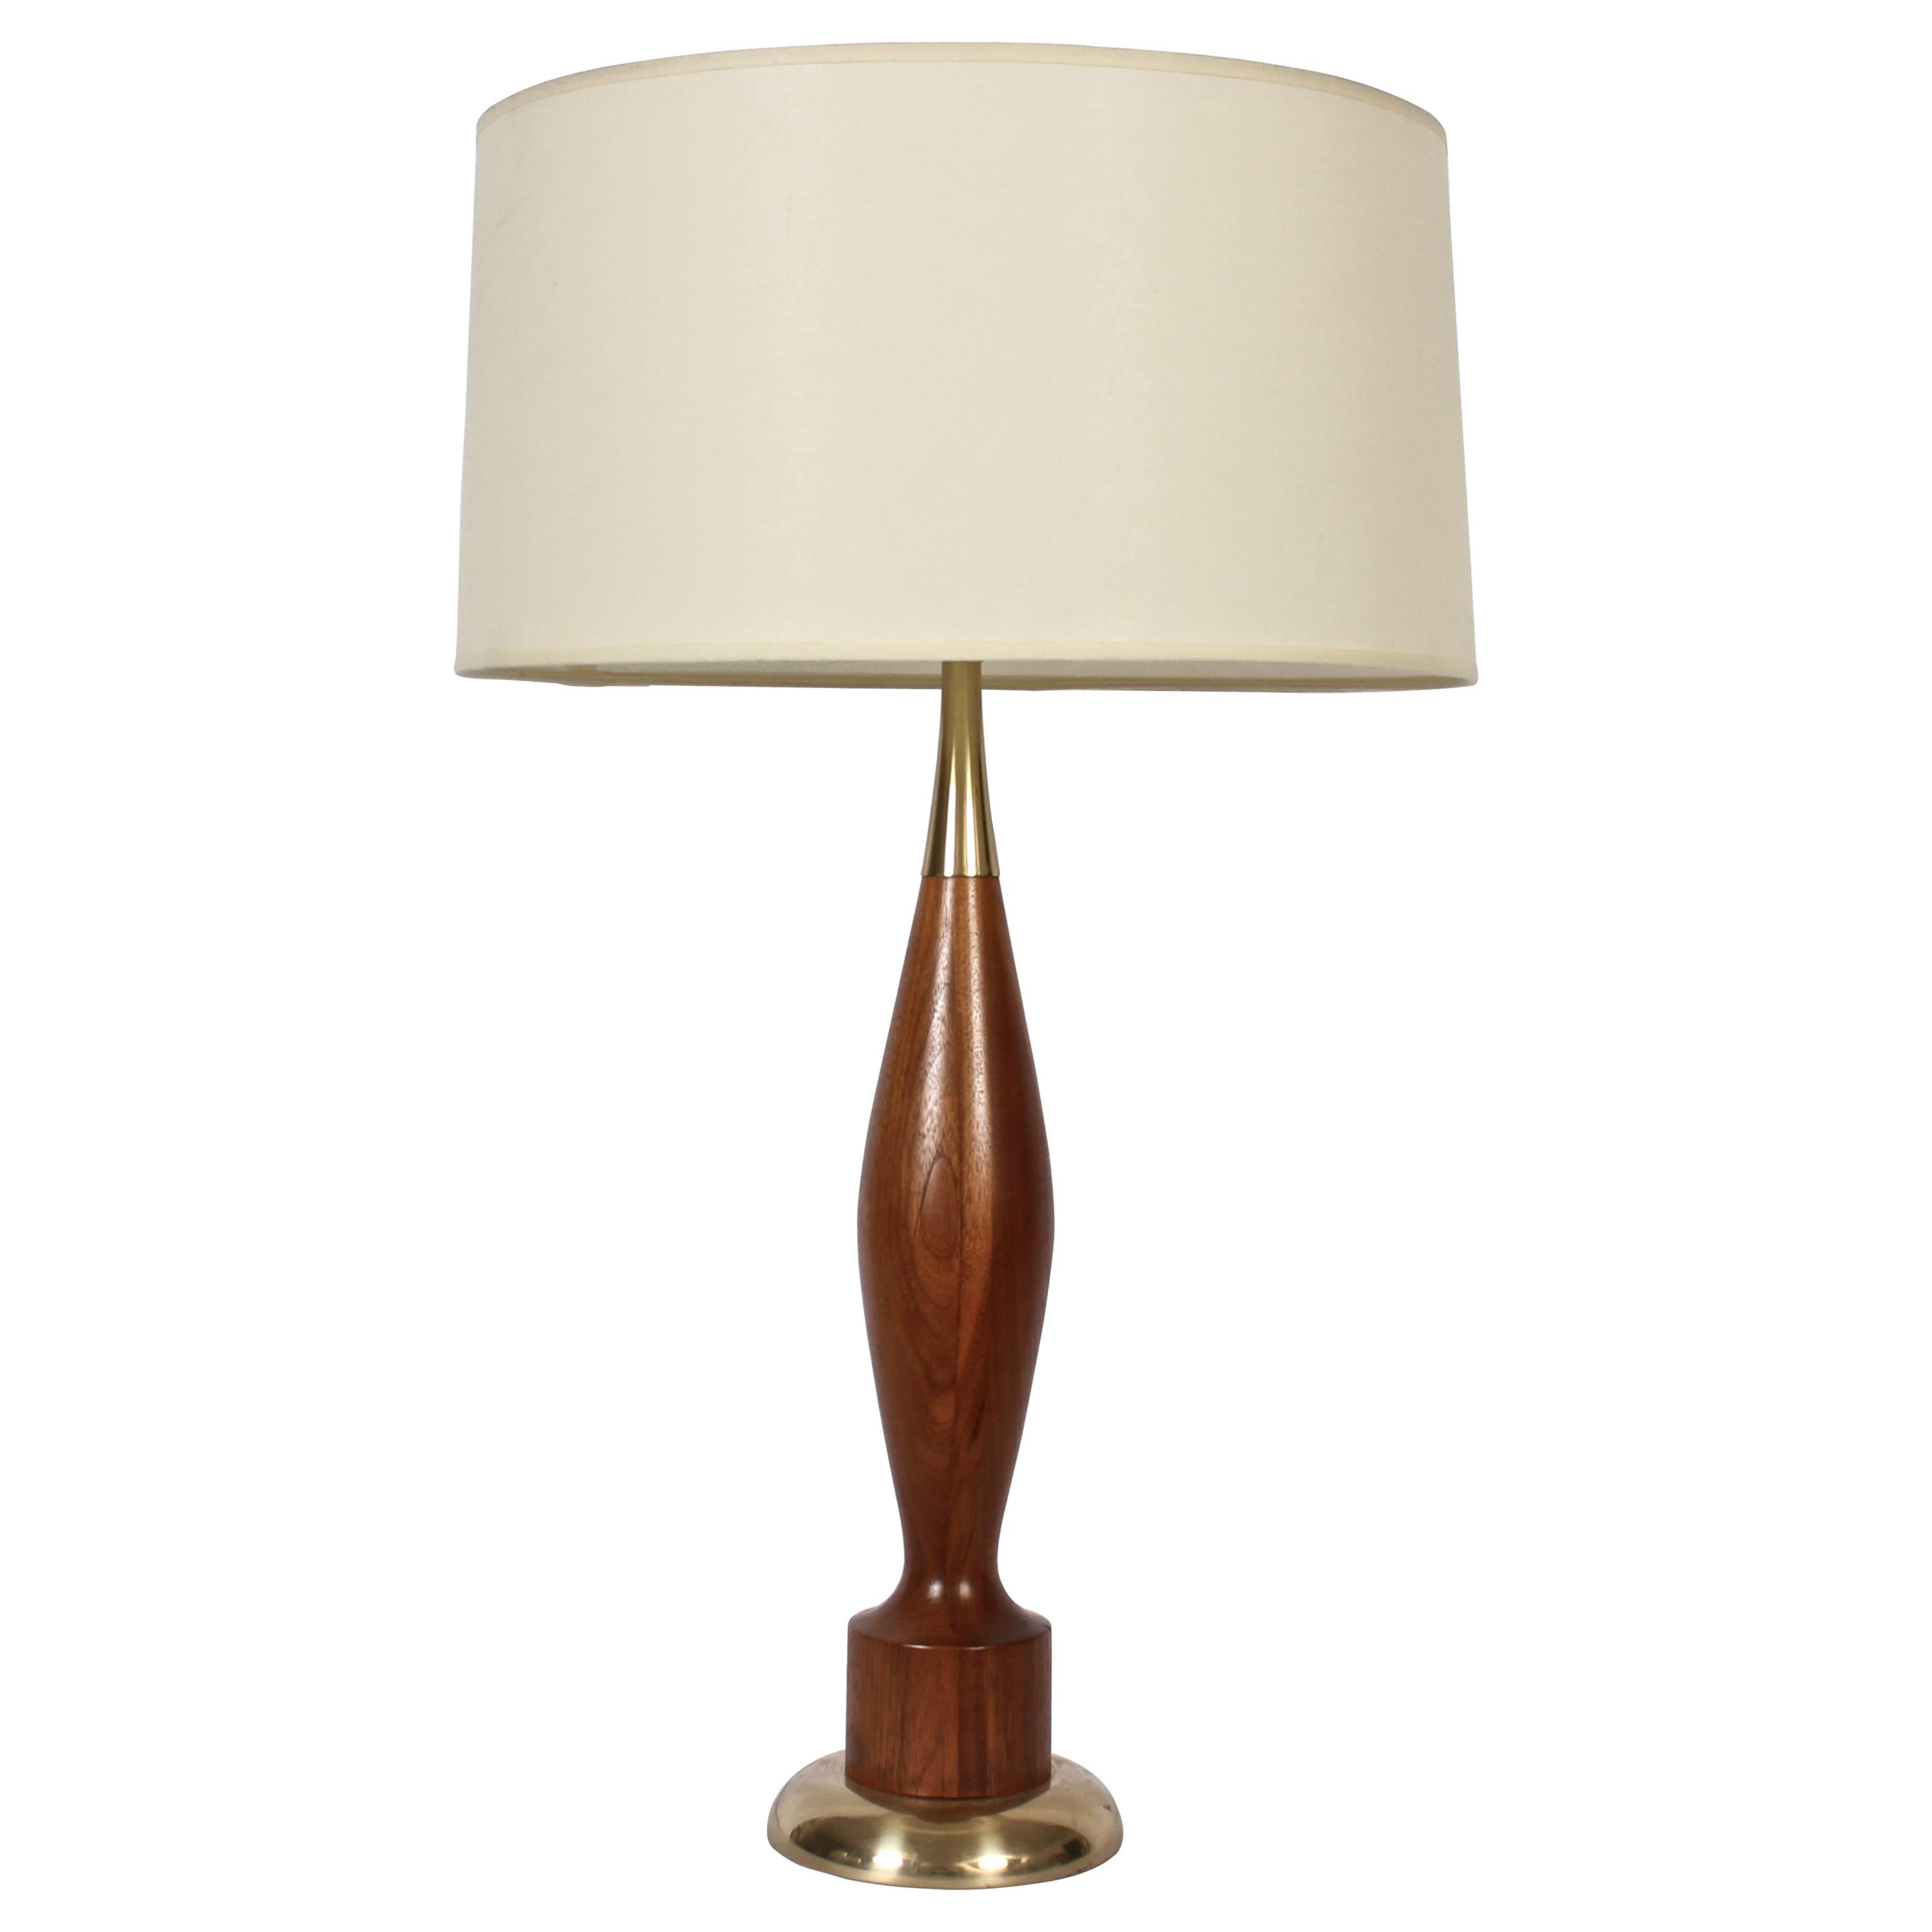 Tall Tony Paul for Westwood Industries Turned Walnut and Brass Table Lamp